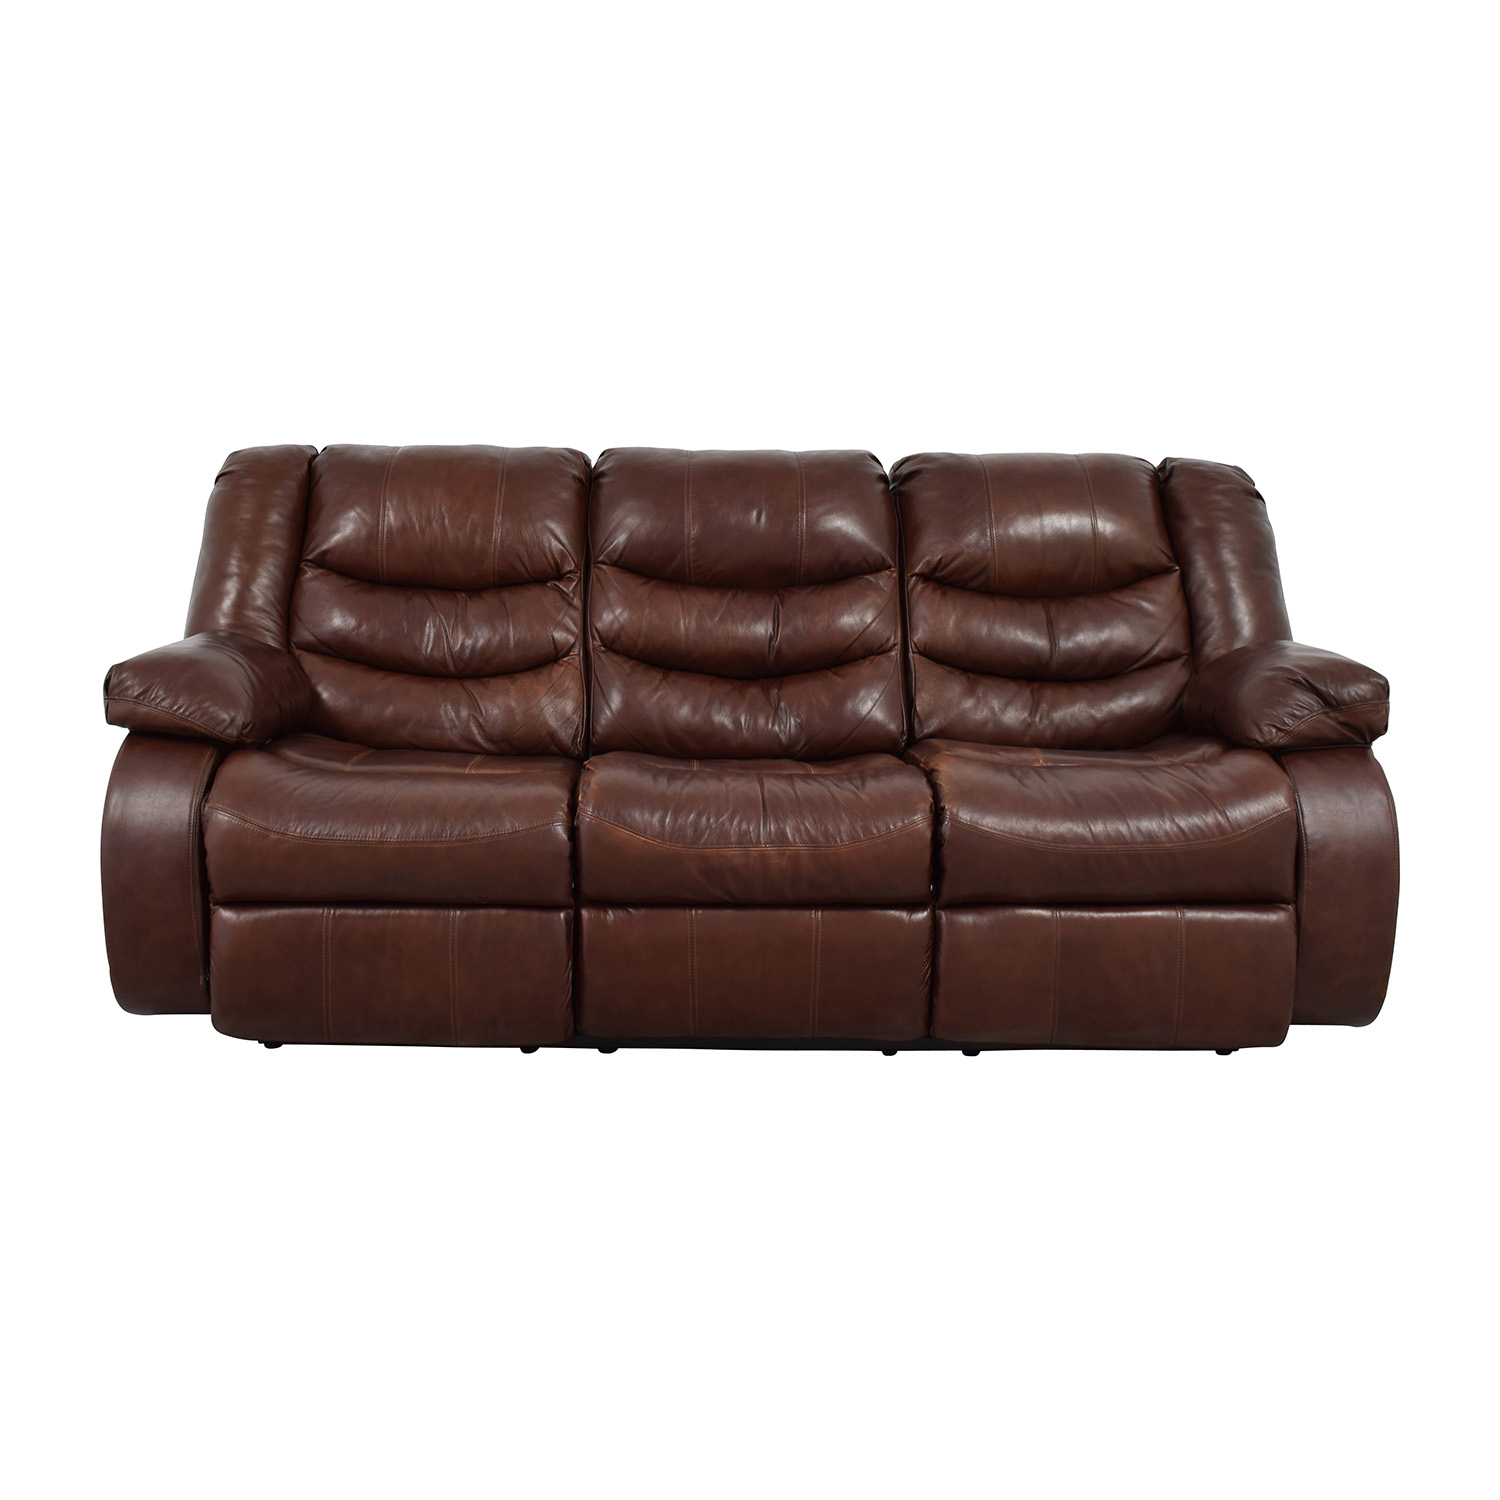 Ashleys Furniture Ashley Furniture Large Brown Leather Reclining Couch nyc